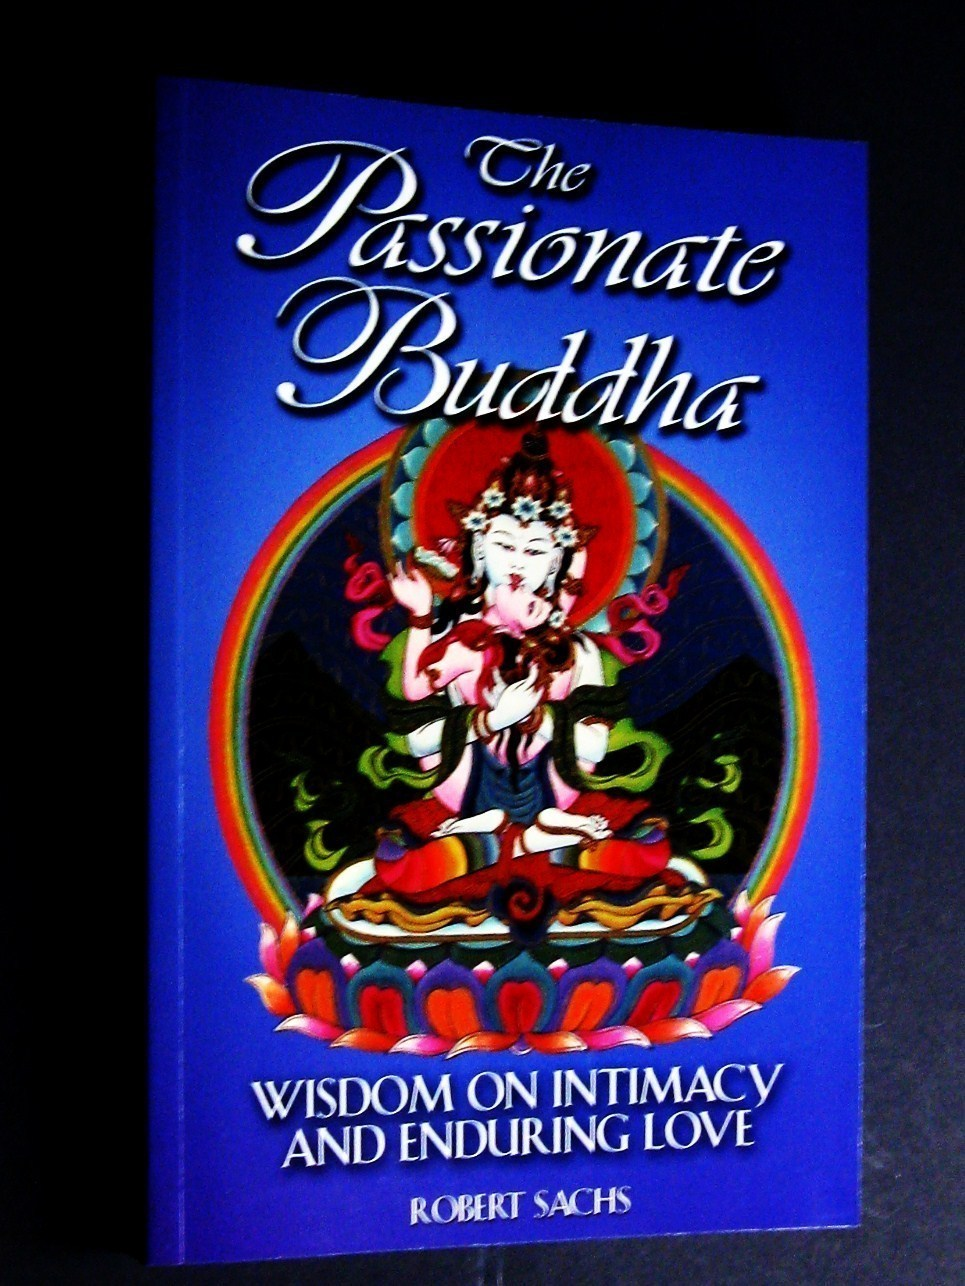 The Passionate Buddha wisdom intimacy enduring love mystical spiritual new book